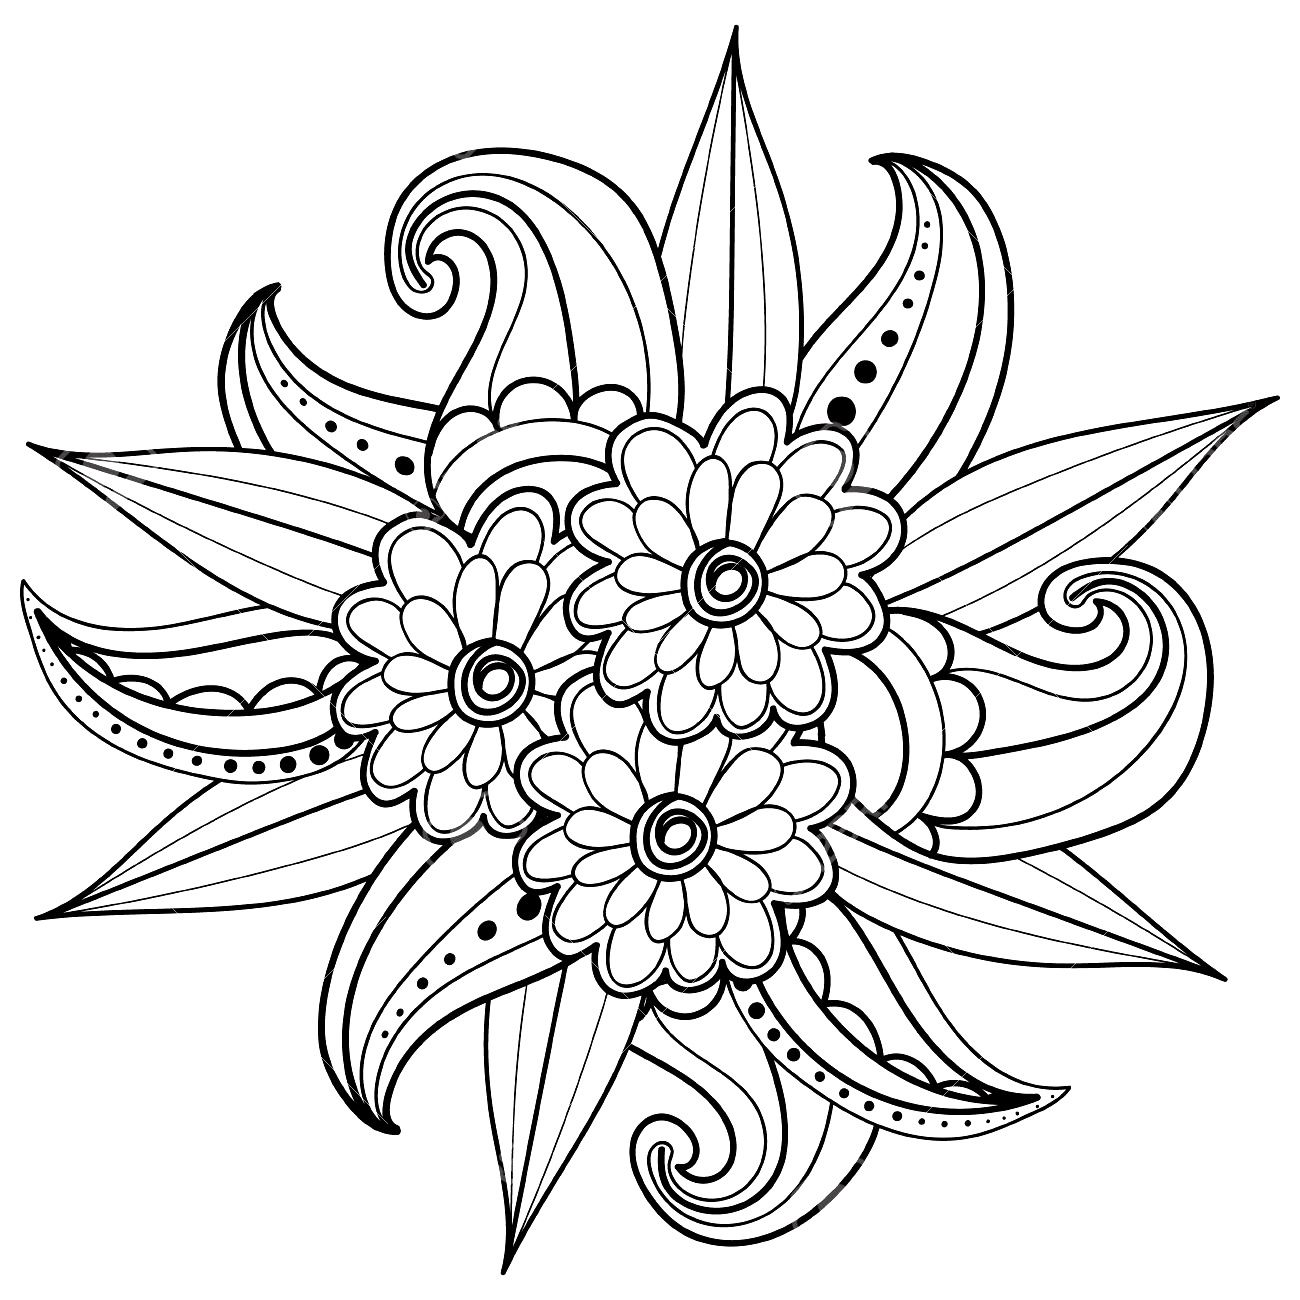 flower doodle coloring pages instant download coloring page flowers art print zentangle doodle pages coloring flower